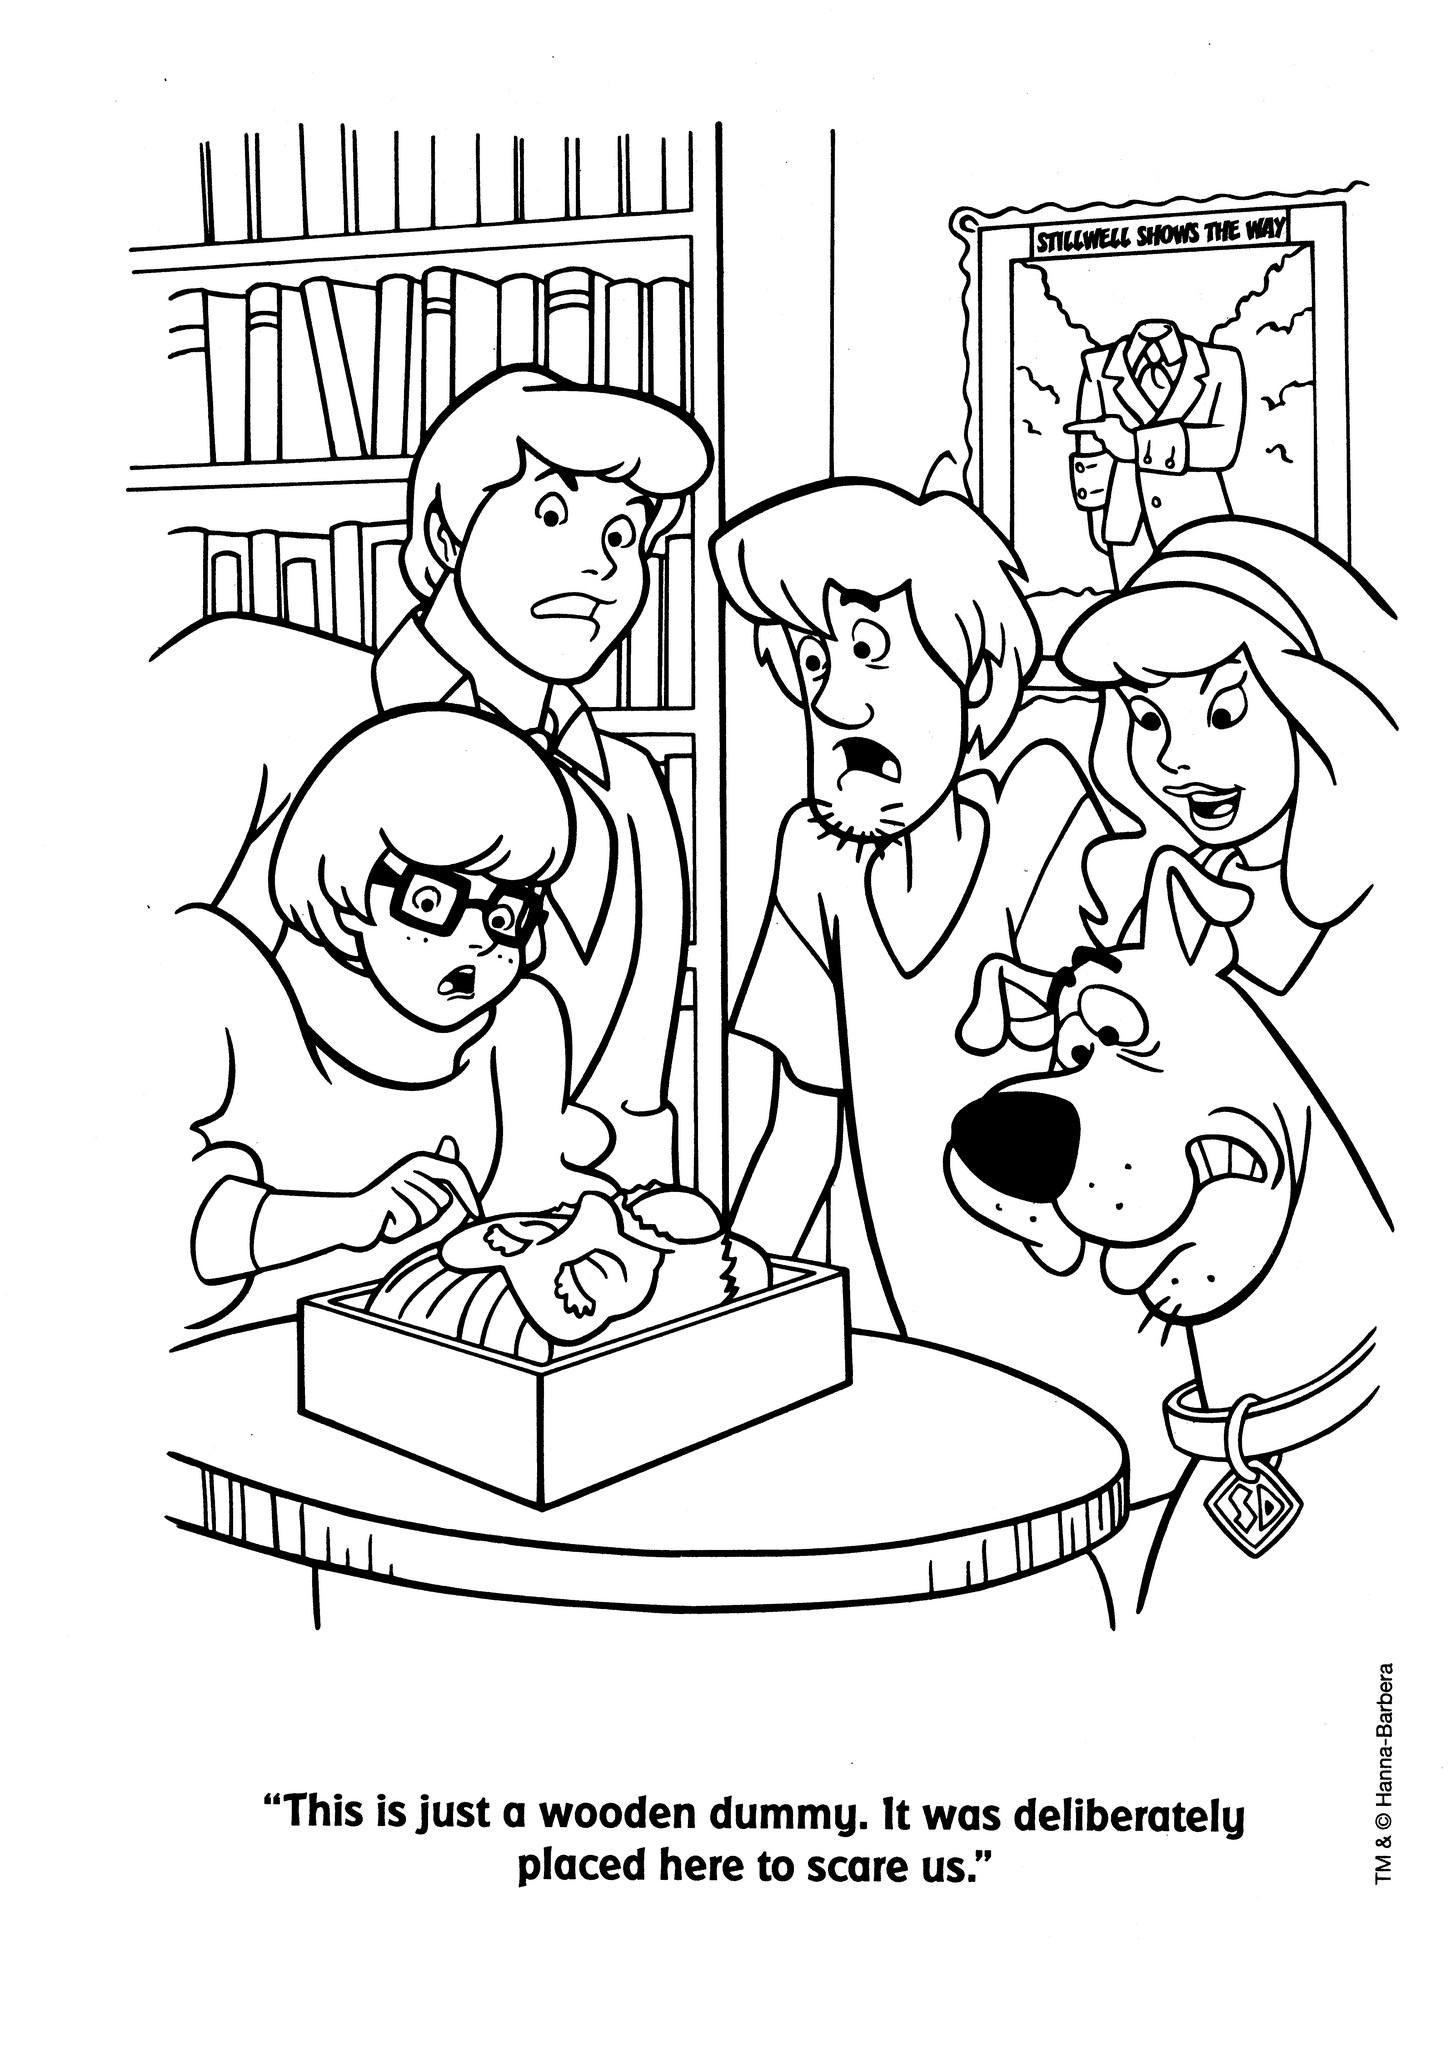 scooby doo coloring pages online free scooby doo coloring games scooby doo coloring pages big coloring doo online scooby free pages